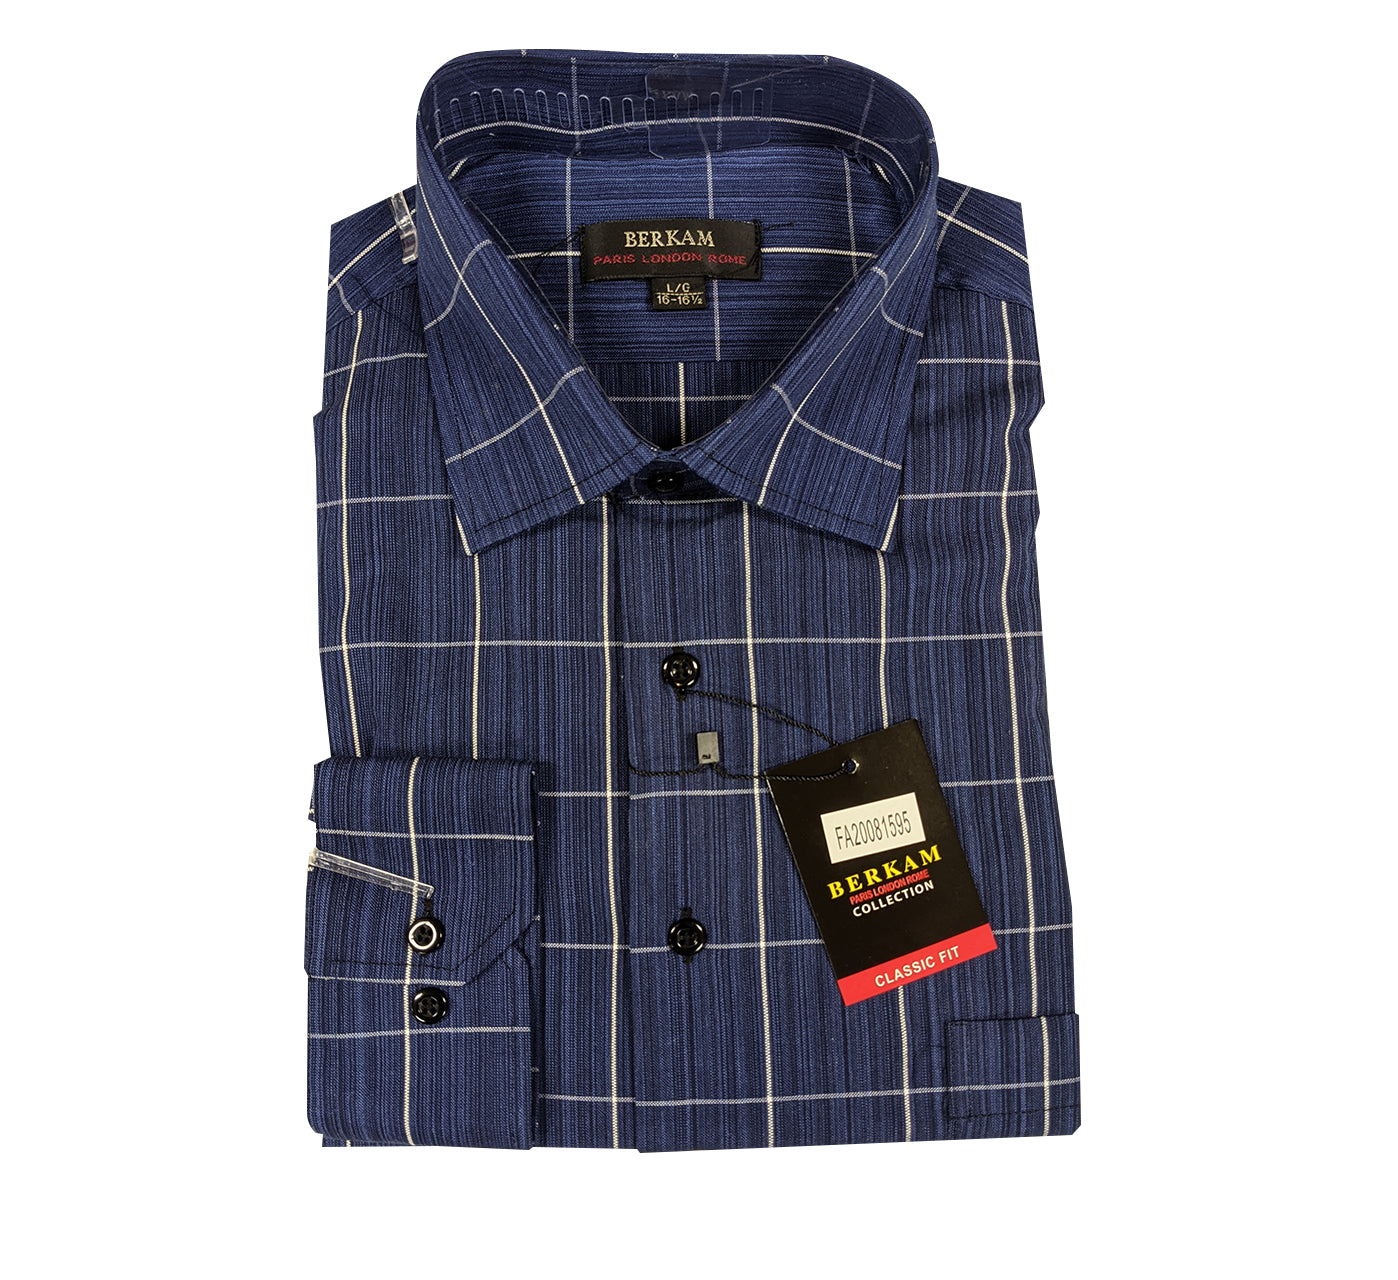 Berkam Sport Shirt - Blue Plaid